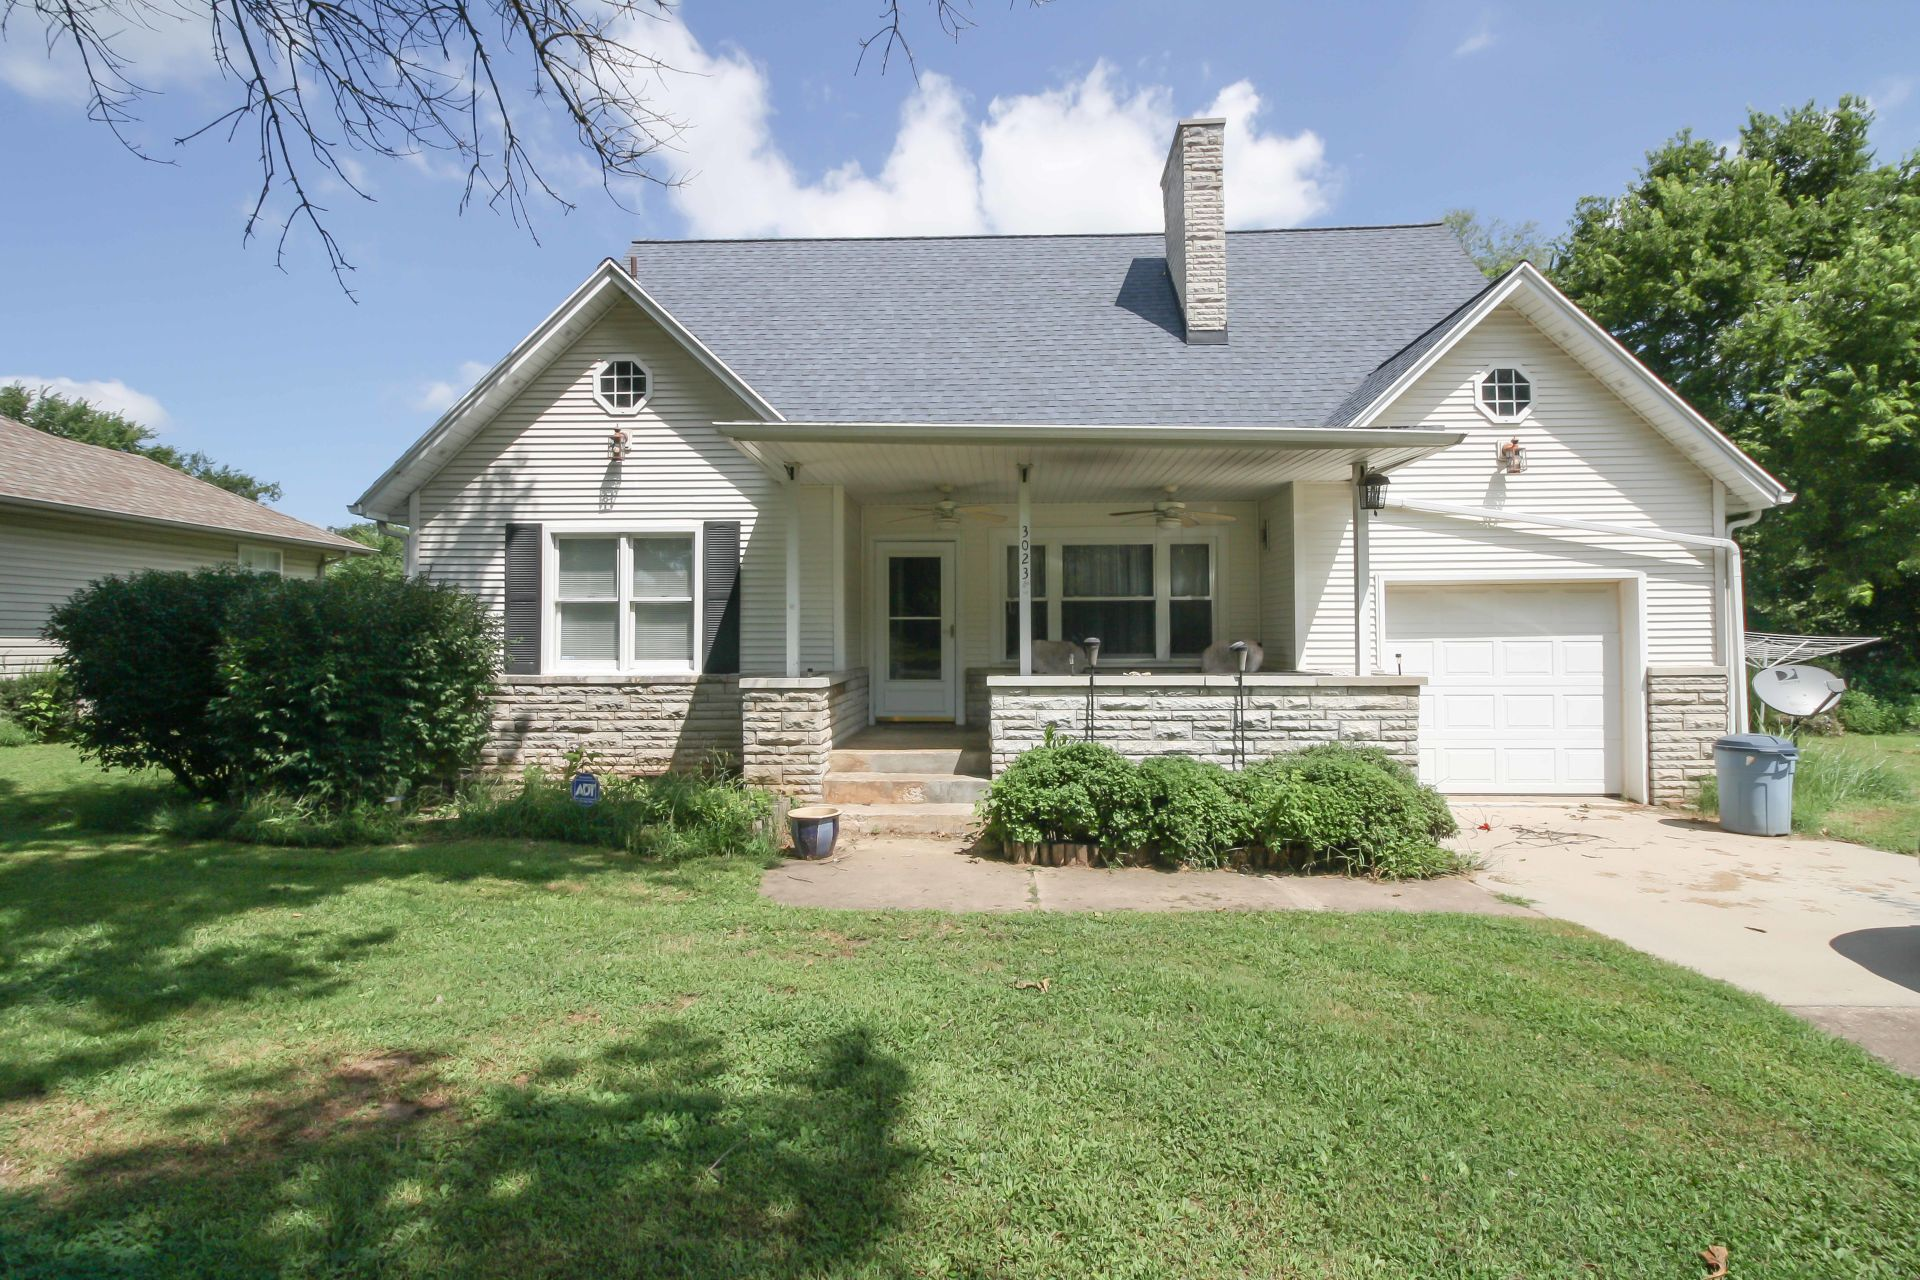 New Listing in Springfield, Missouri! 4 Bedrooms, on almost Half an Acre